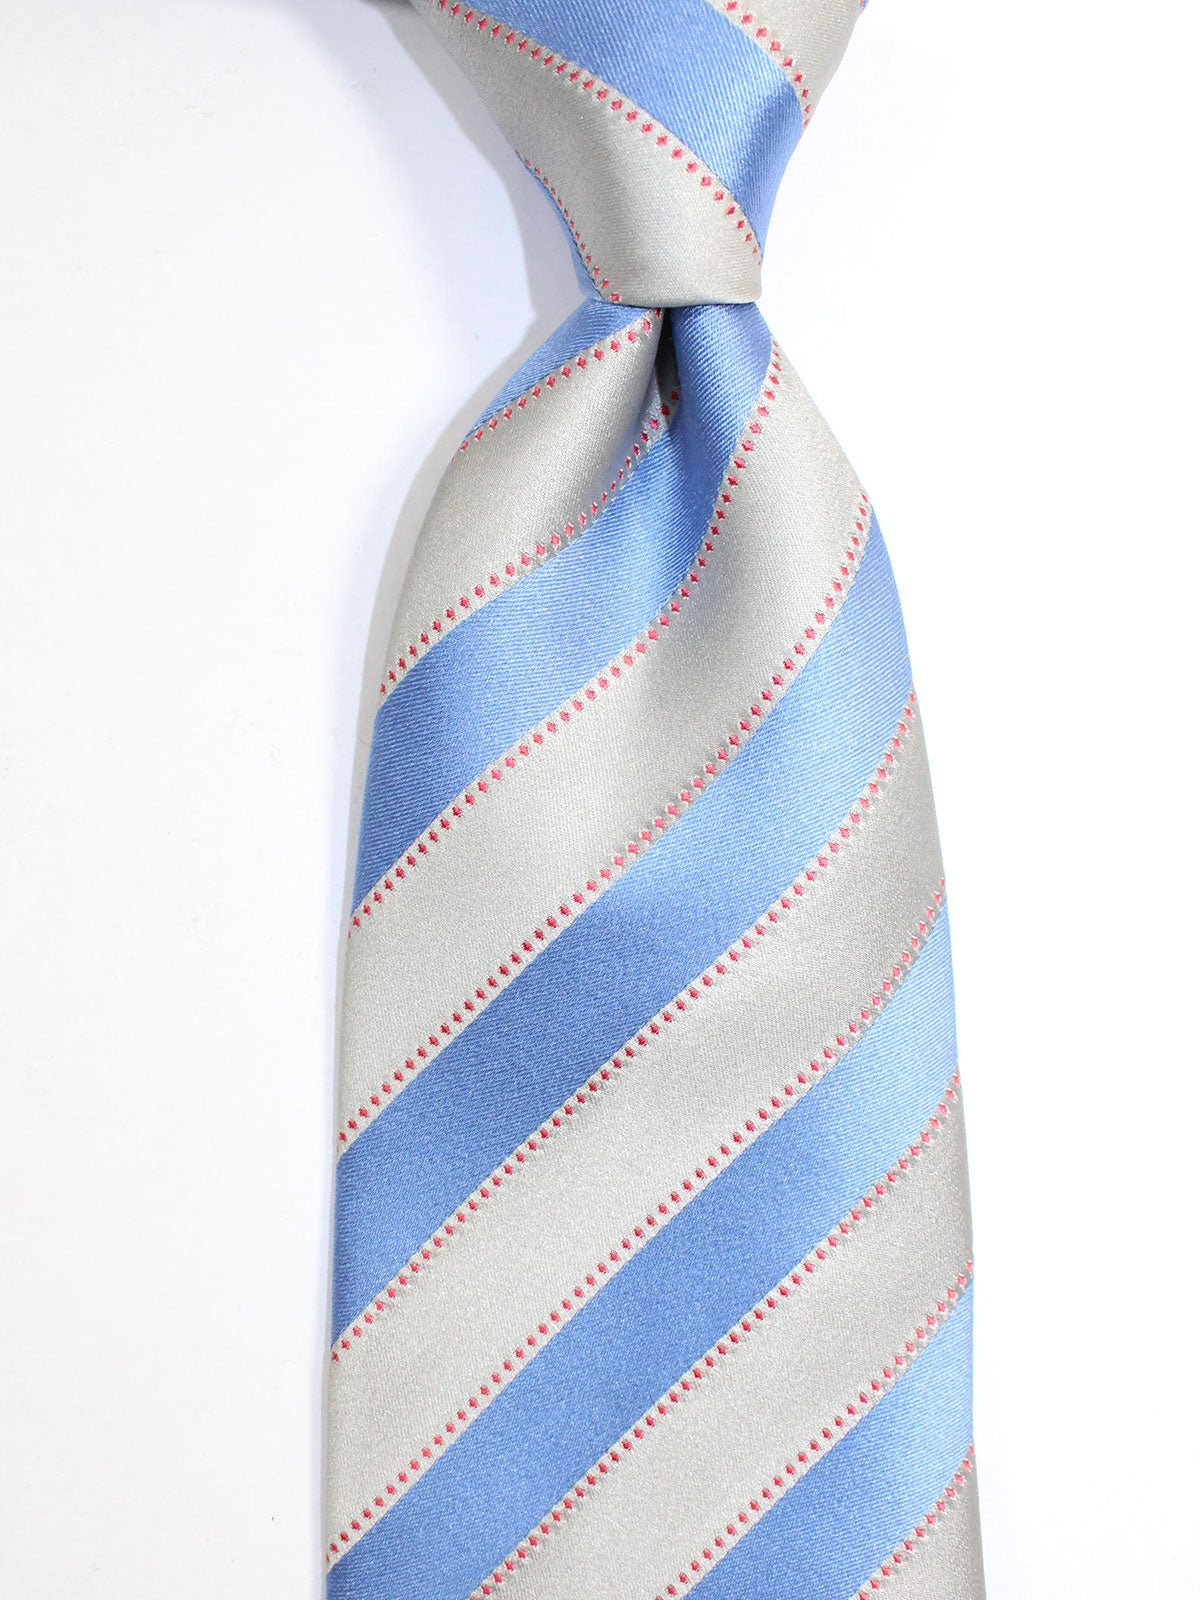 Zilli Silk Tie Gray Blue Red Stripes Design - Wide Necktie